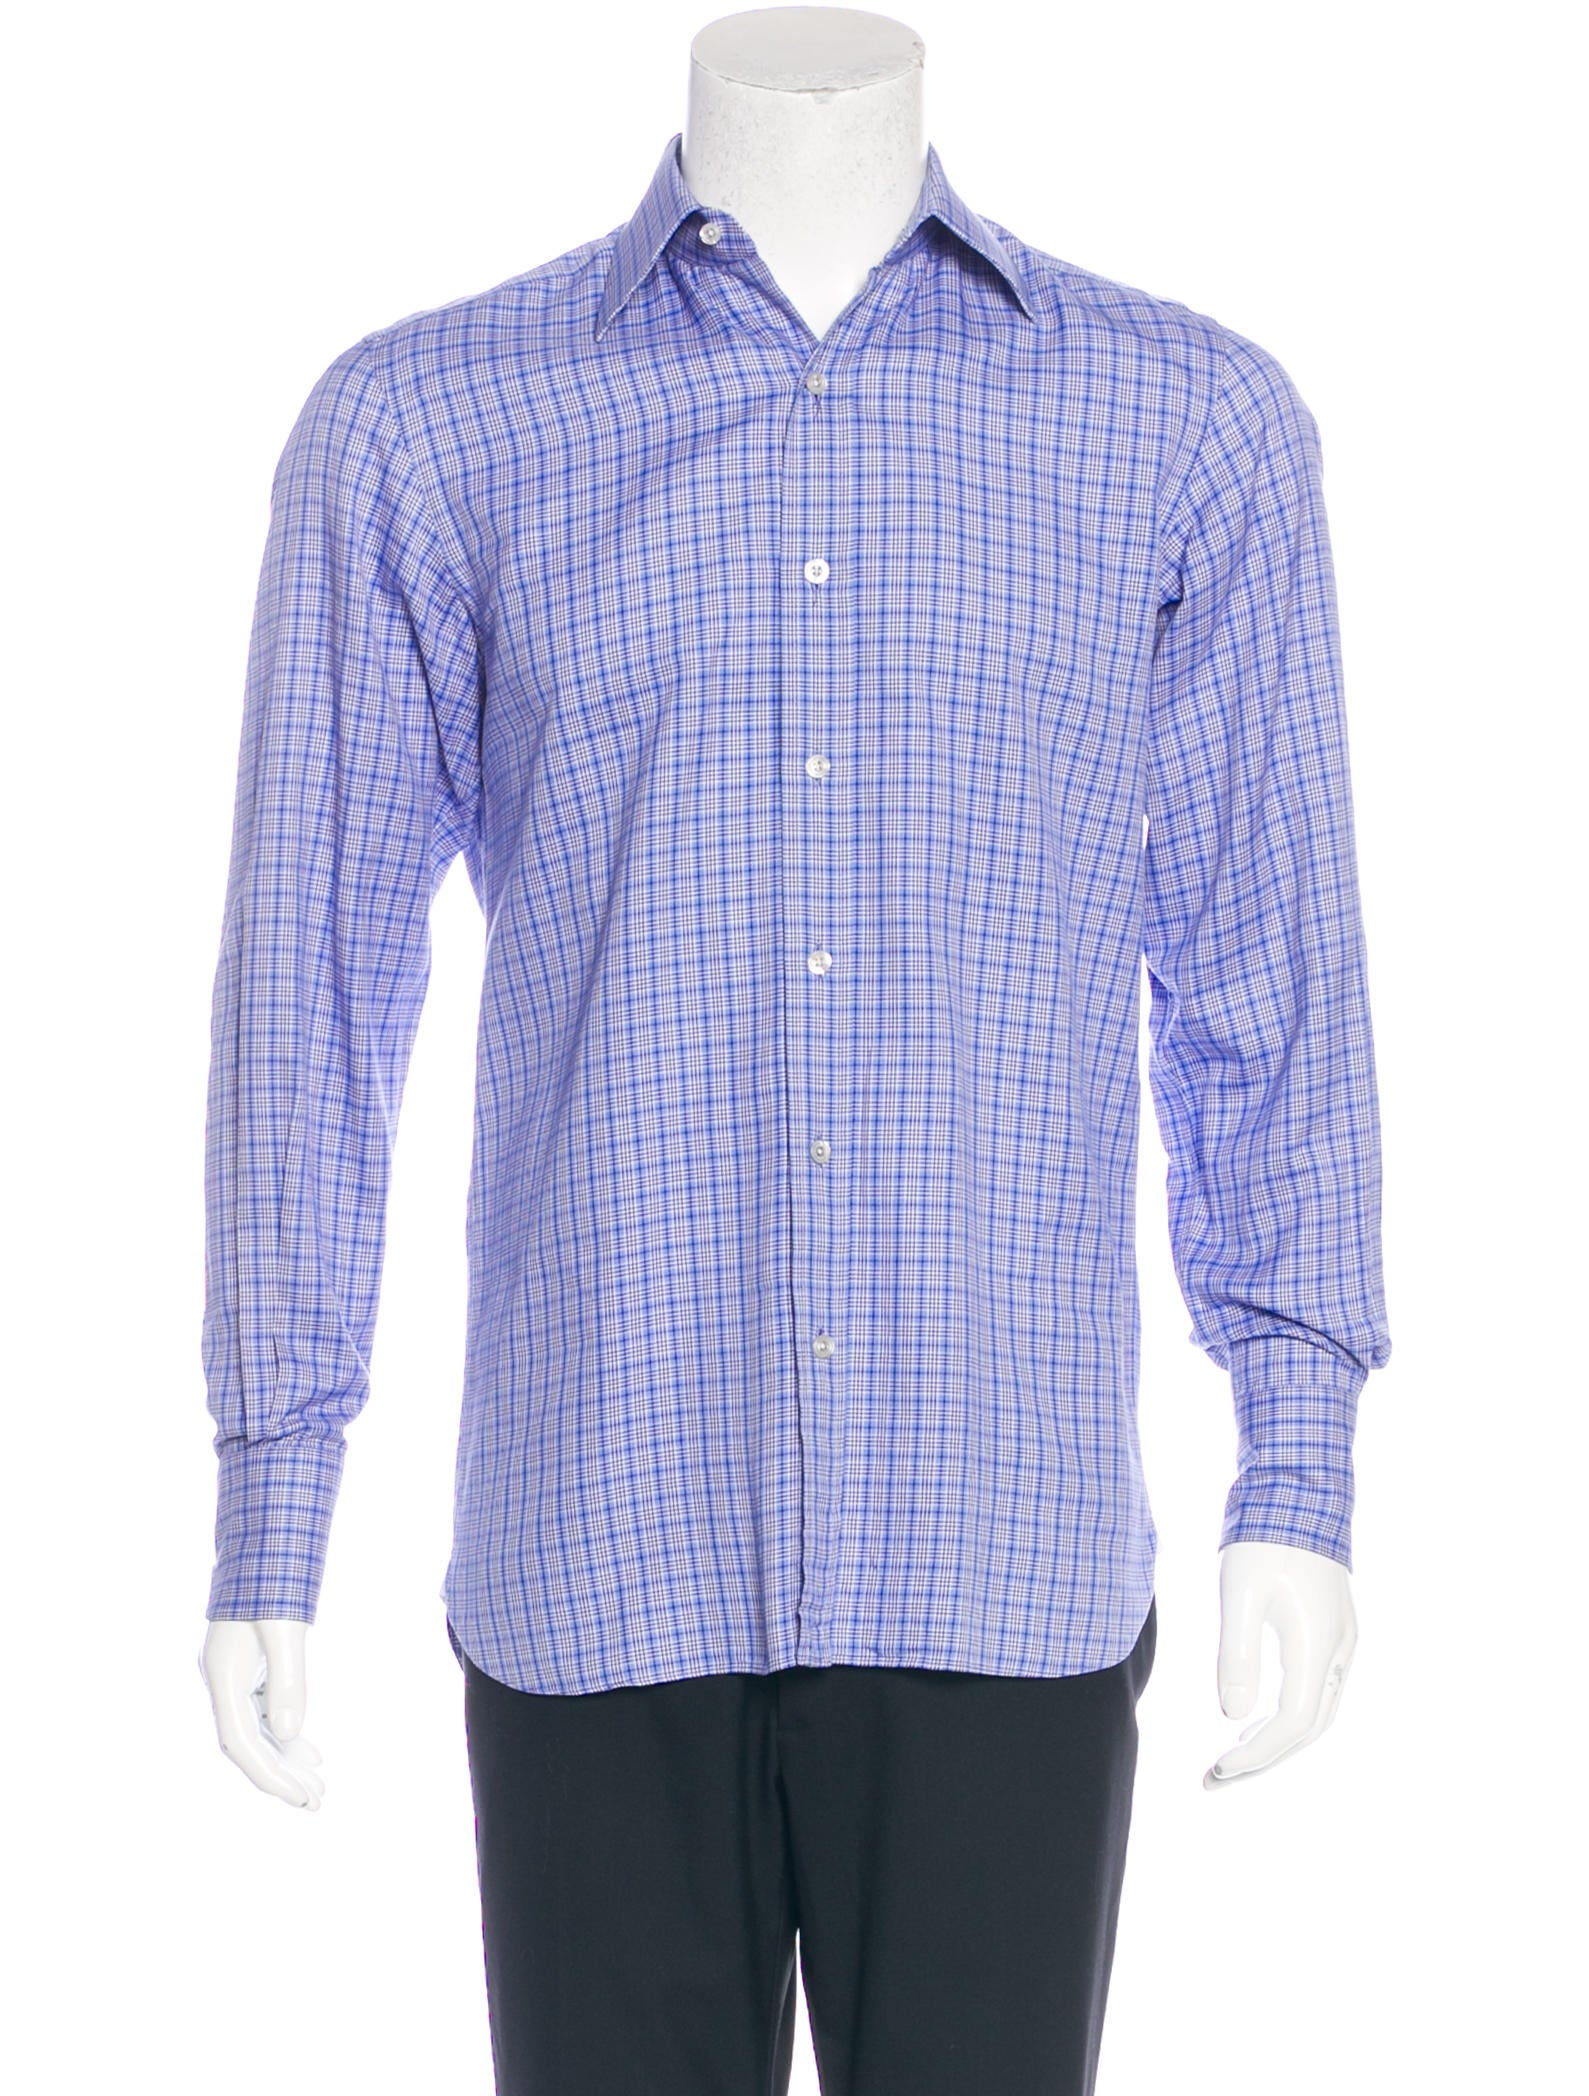 Tom ford plaid button up shirt clothing tom37196 the for Baseball button up t shirt dress